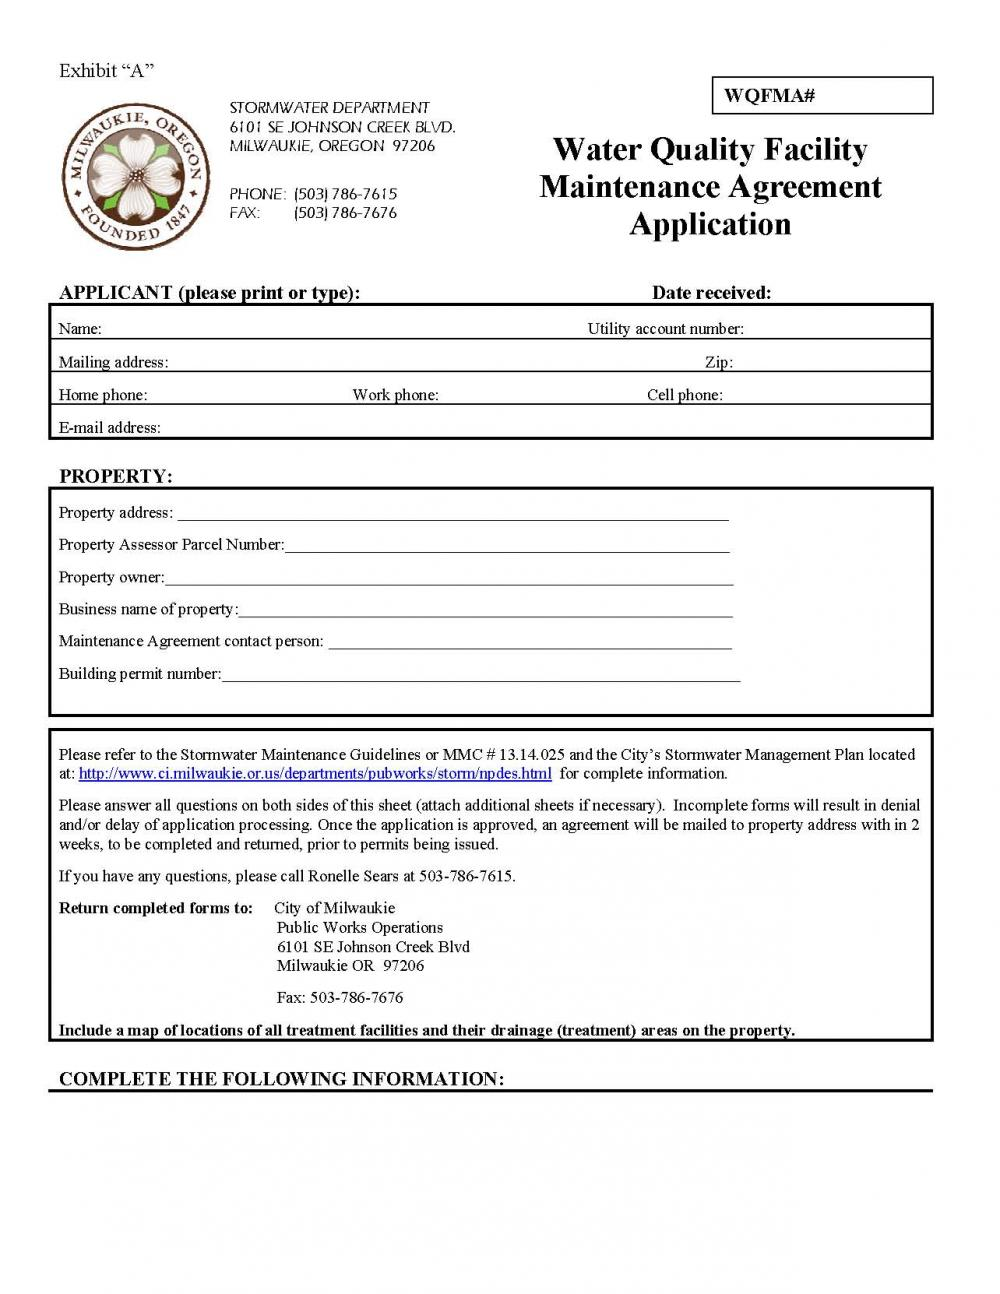 Storm Water Quality Facility Maintenance Agreement | City of ...